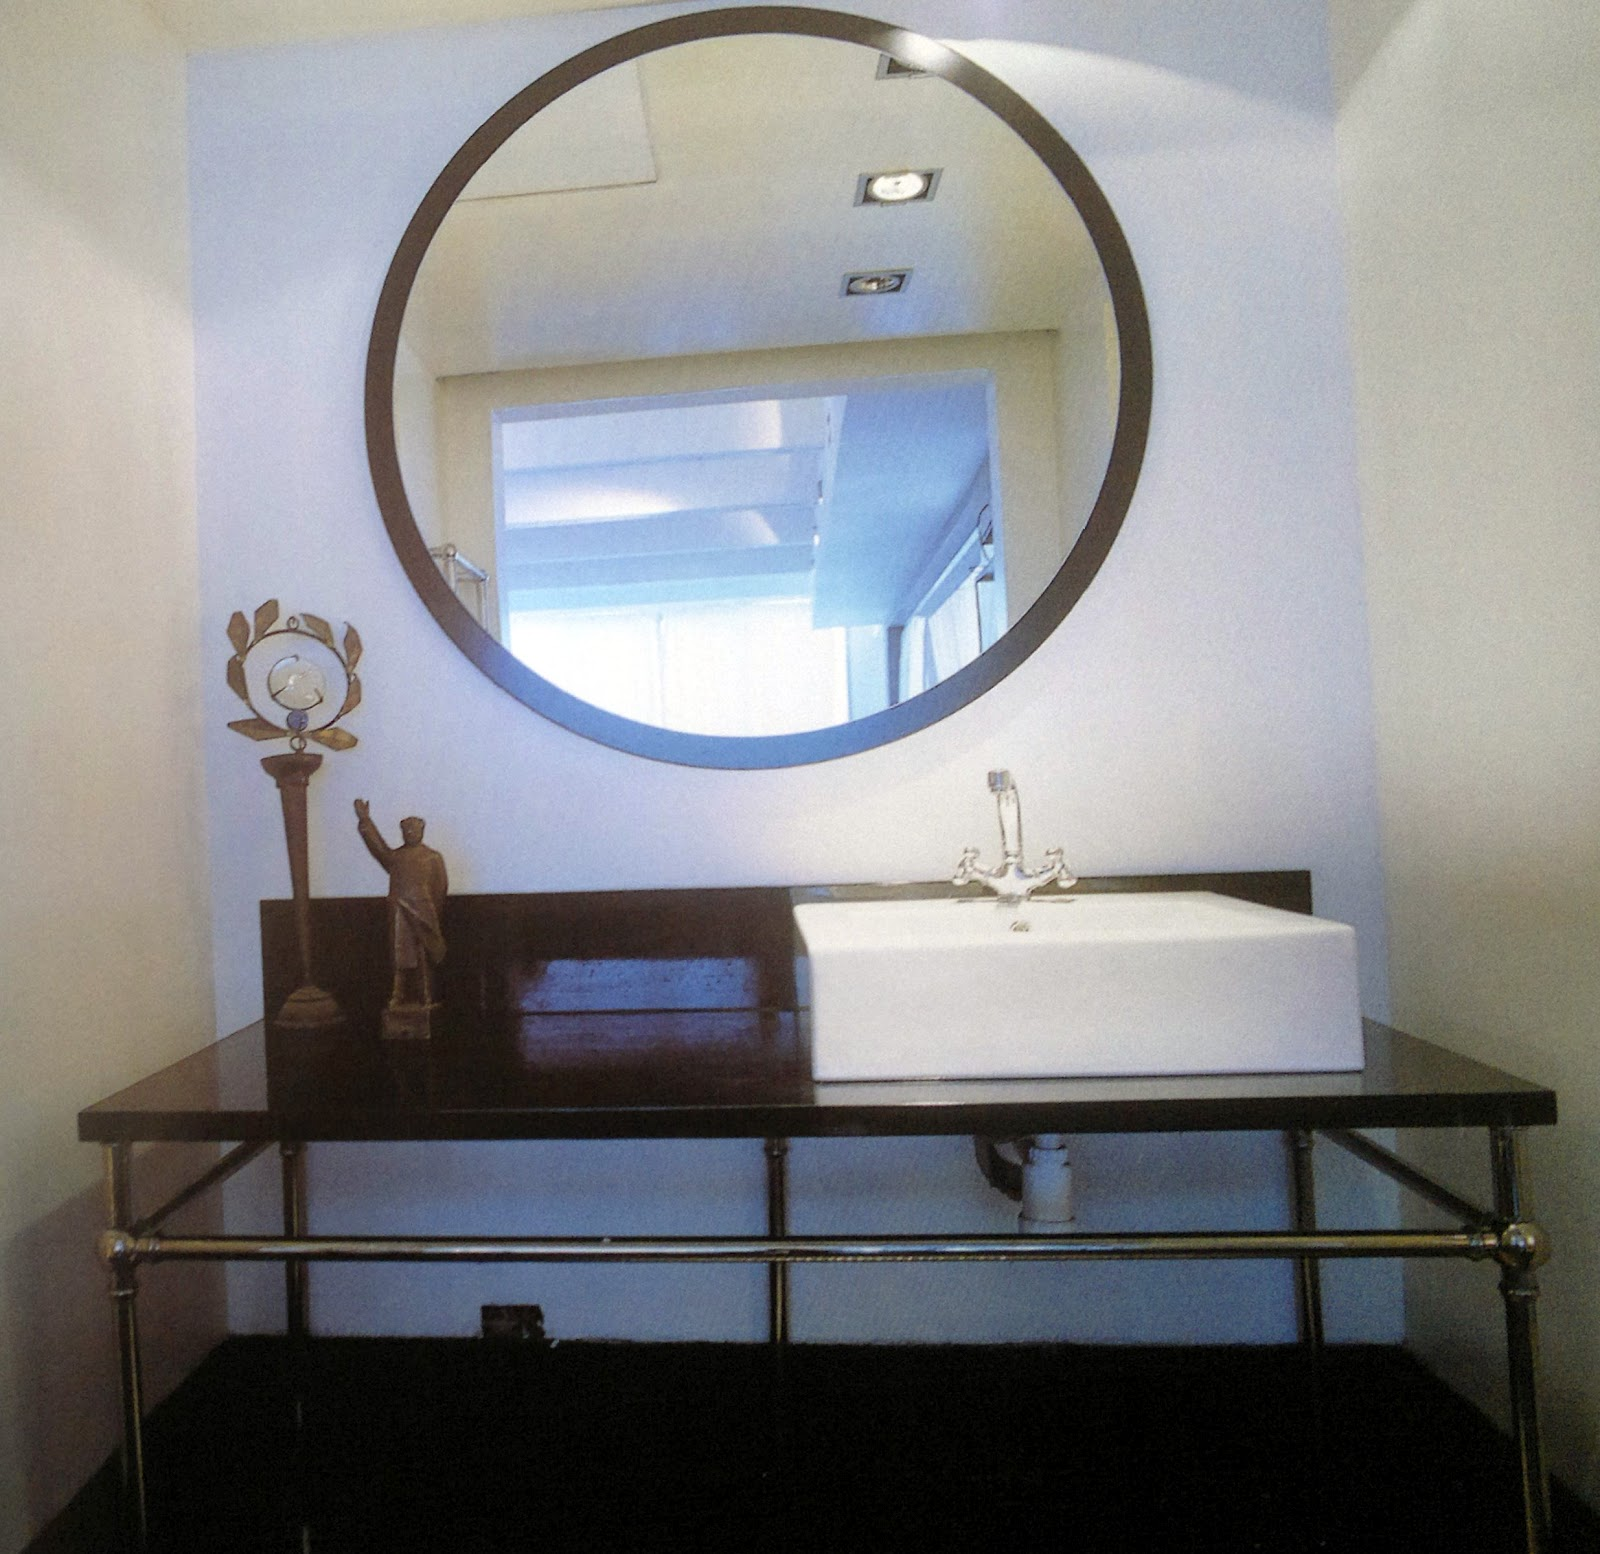 Archi & Tetti: Il Feng Shui in bagno (post n. 6)